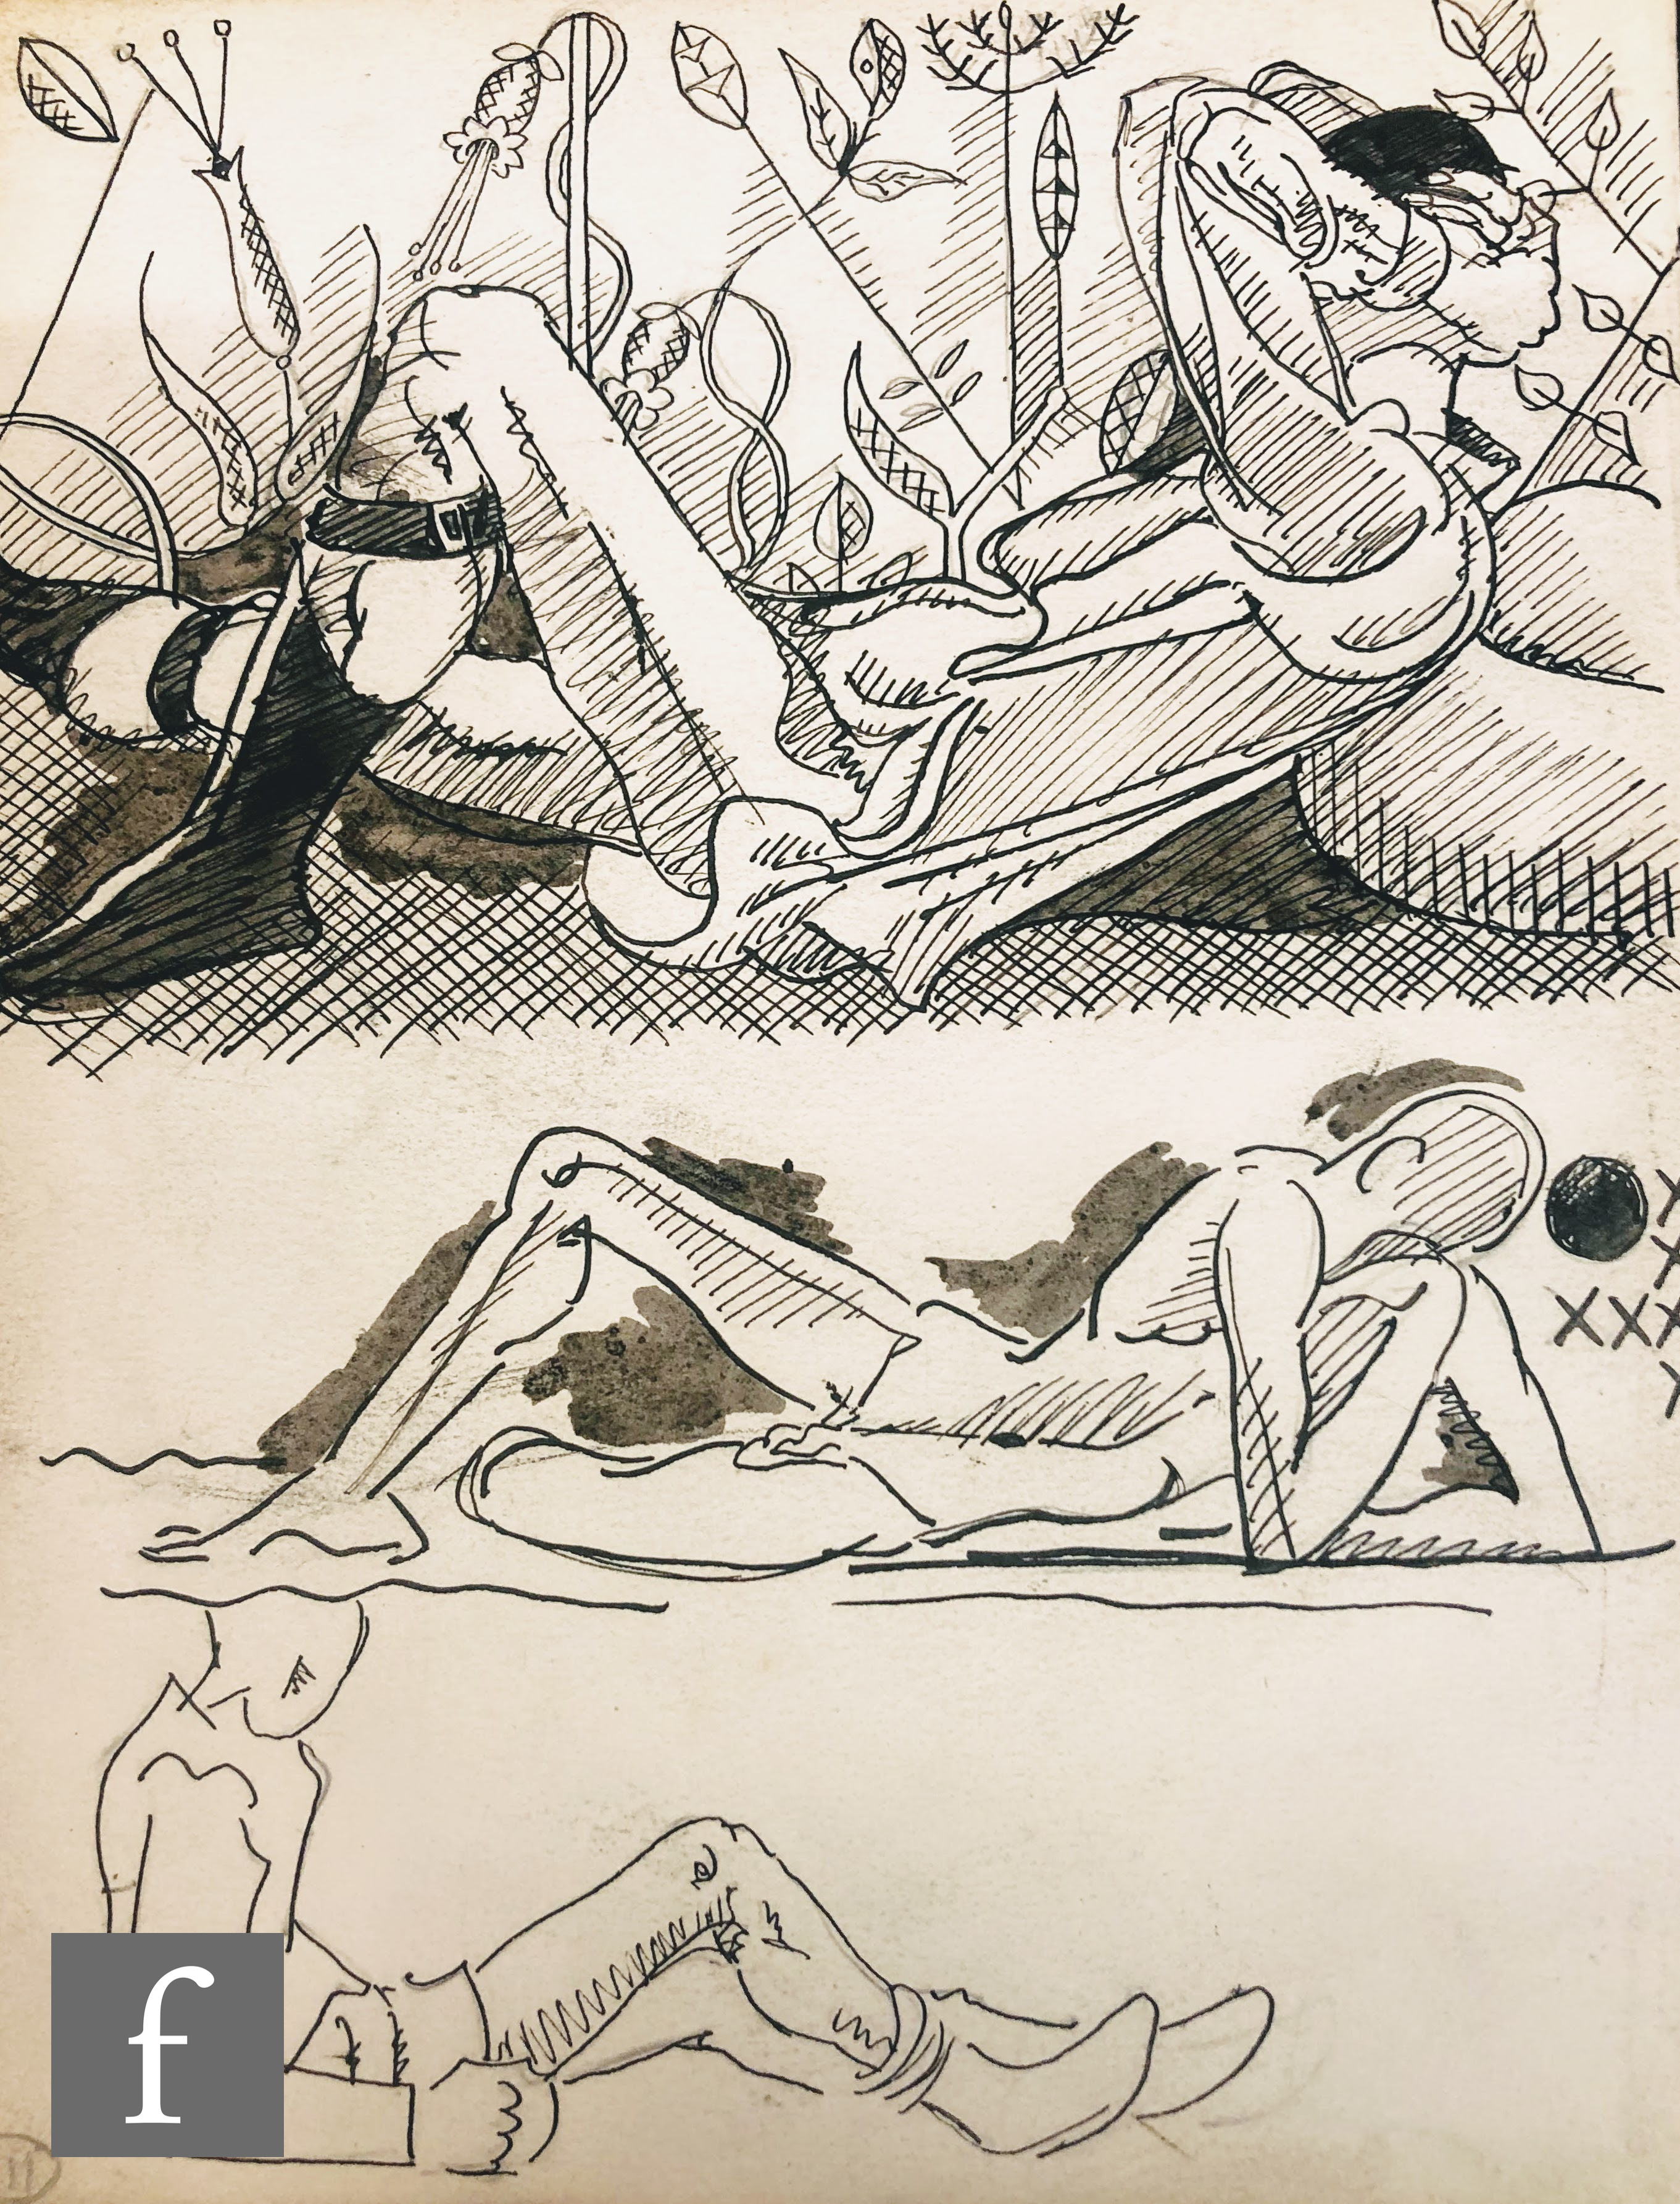 ALBERT WAINWRIGHT (1898-1943) - A study depicting two semi nude young male figures surrounded by - Image 2 of 2